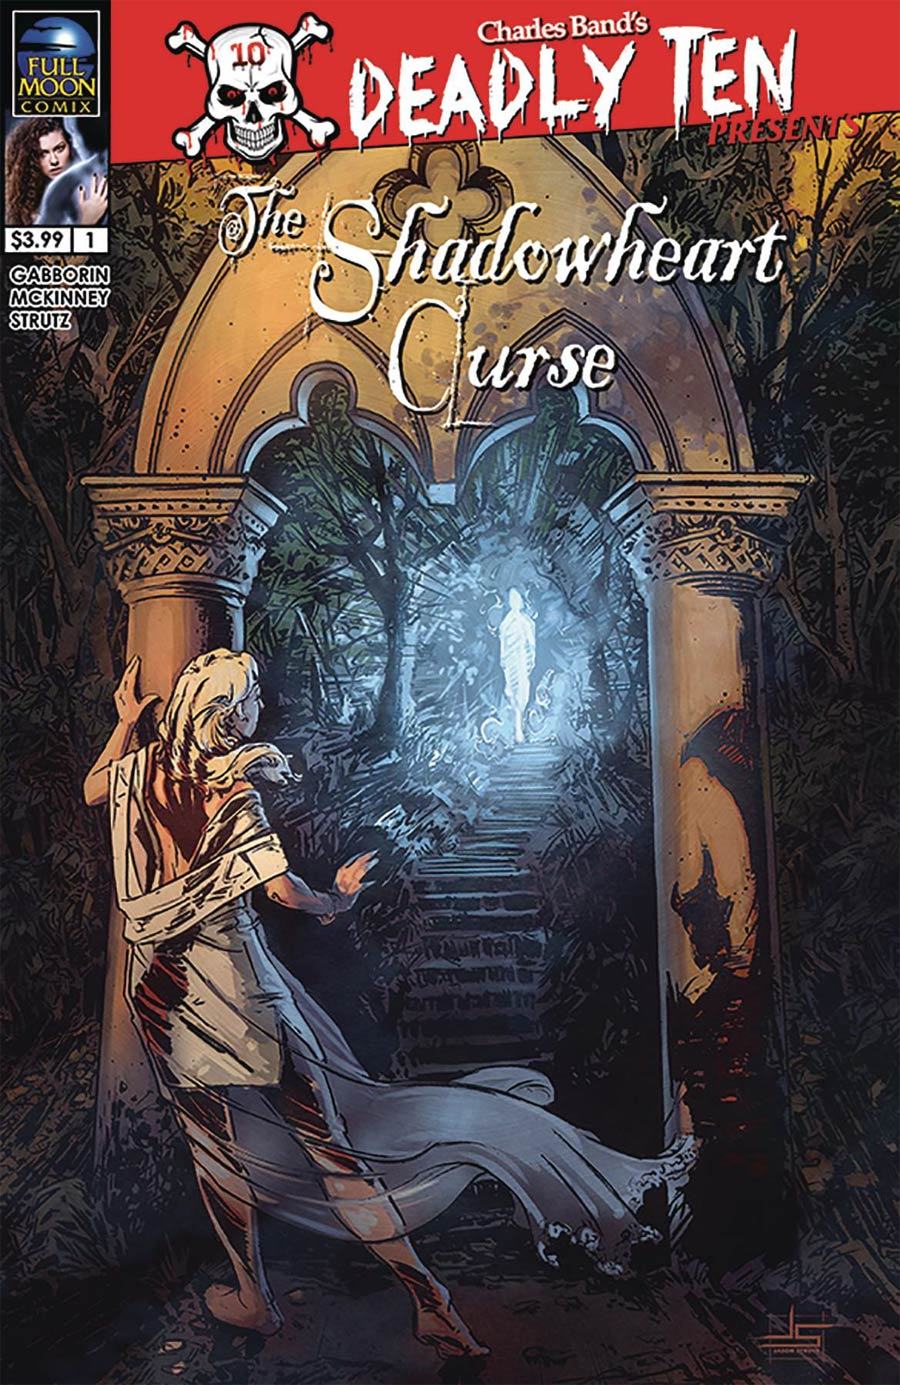 Deadly Ten Presents #7 Shadowheart Curse Cover B Variant Jason Strutz Cover